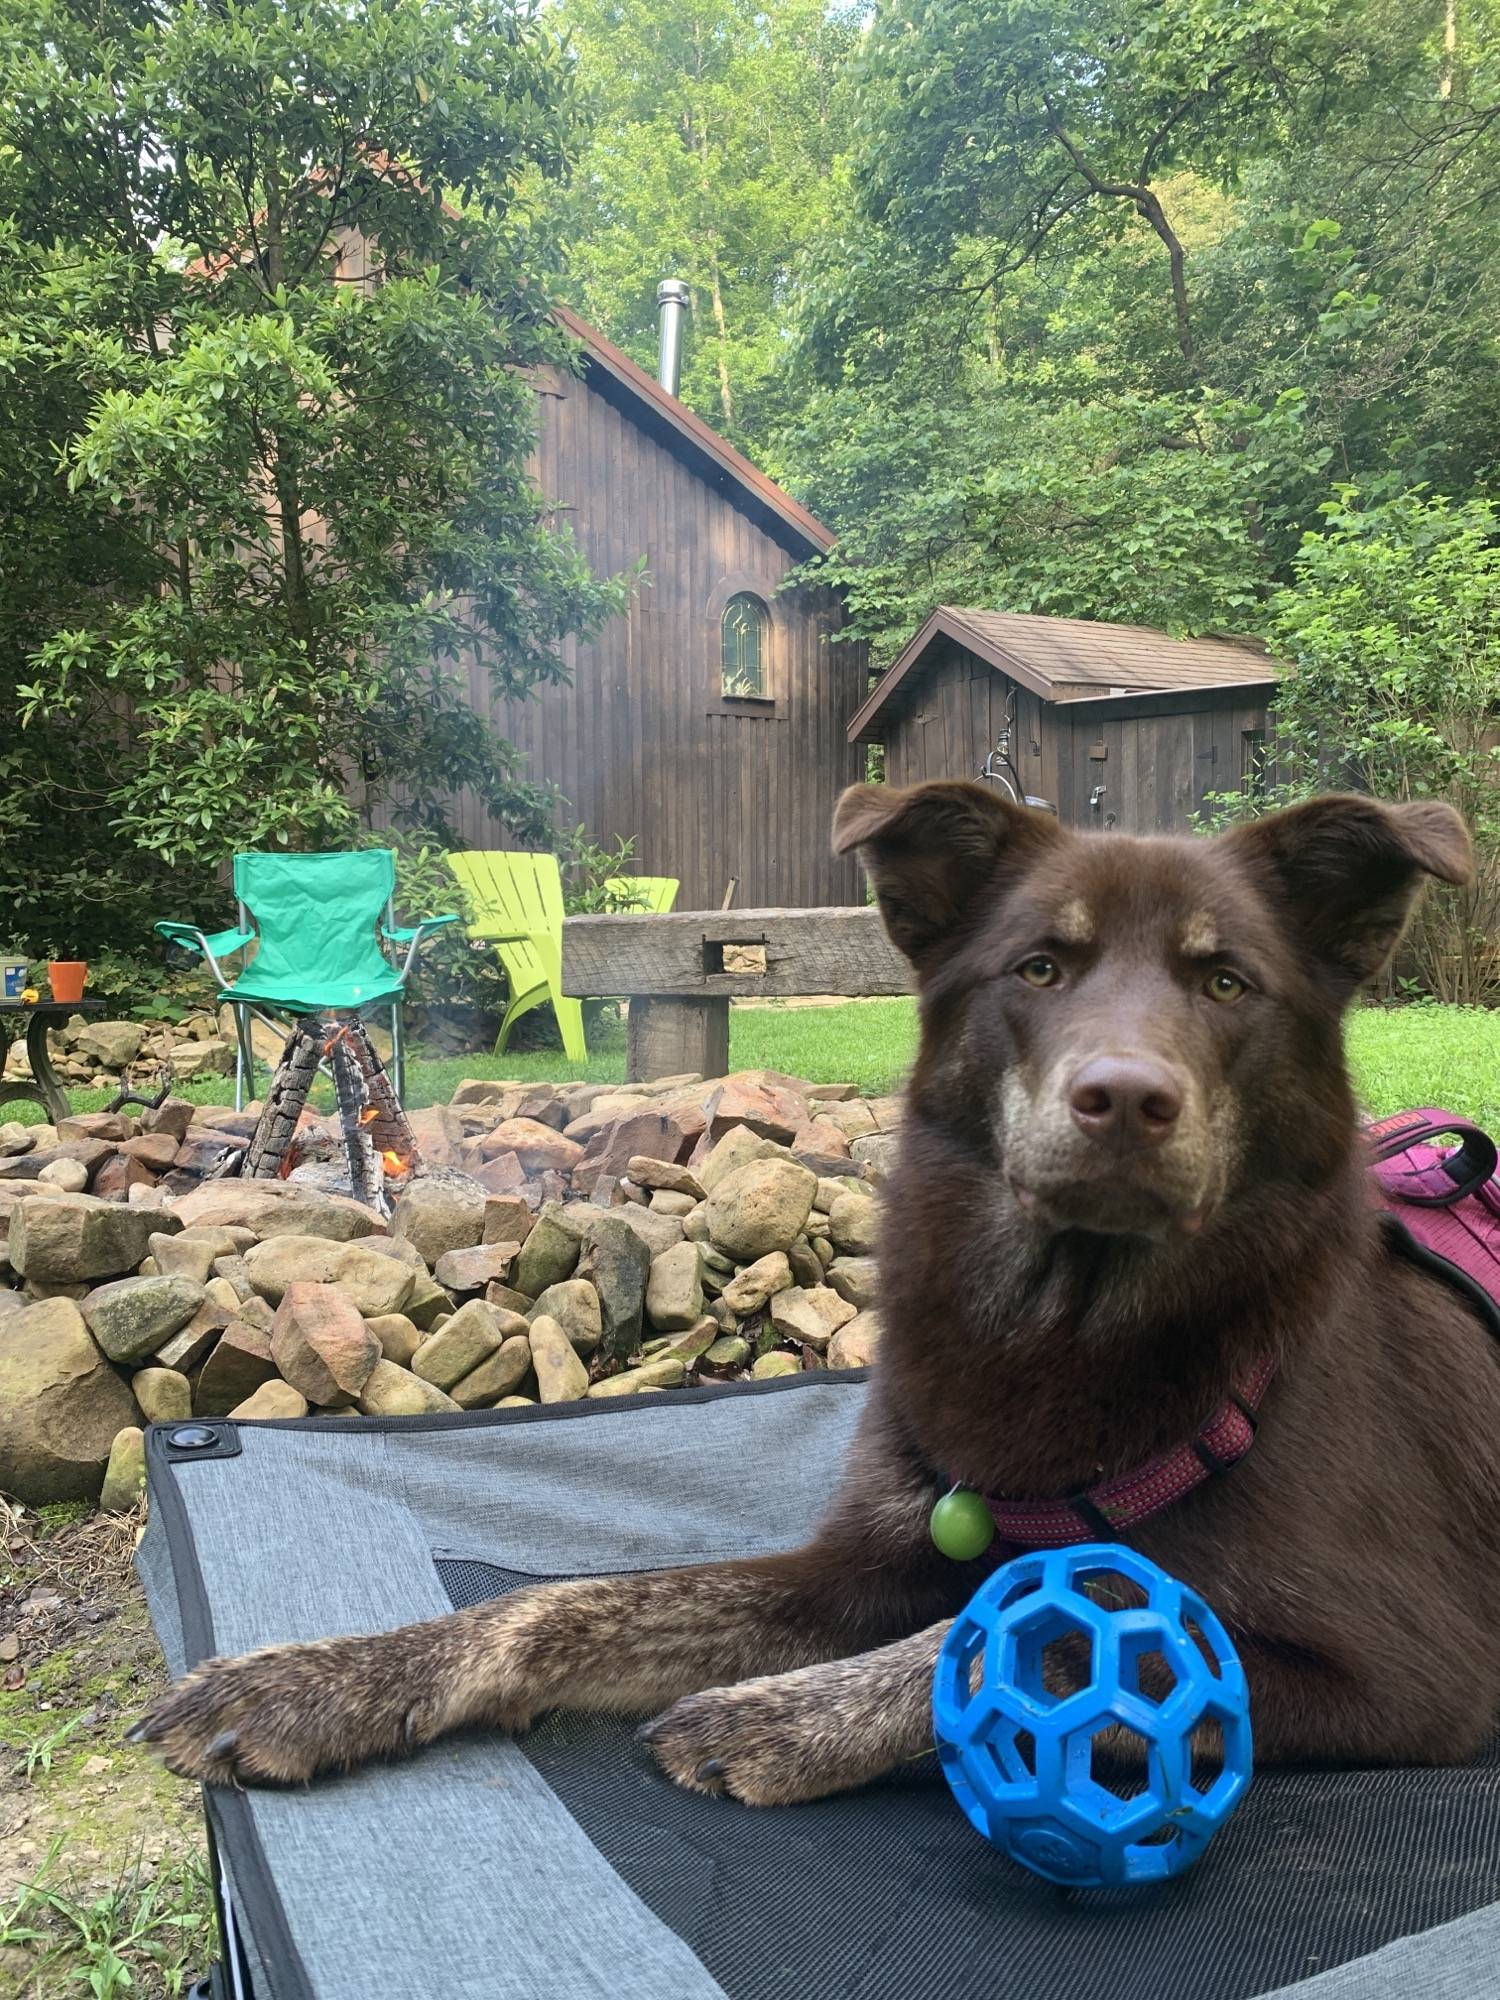 Took the pup to a cabin in the Shawnee State Forest, Jupiter is loving it! 🤩